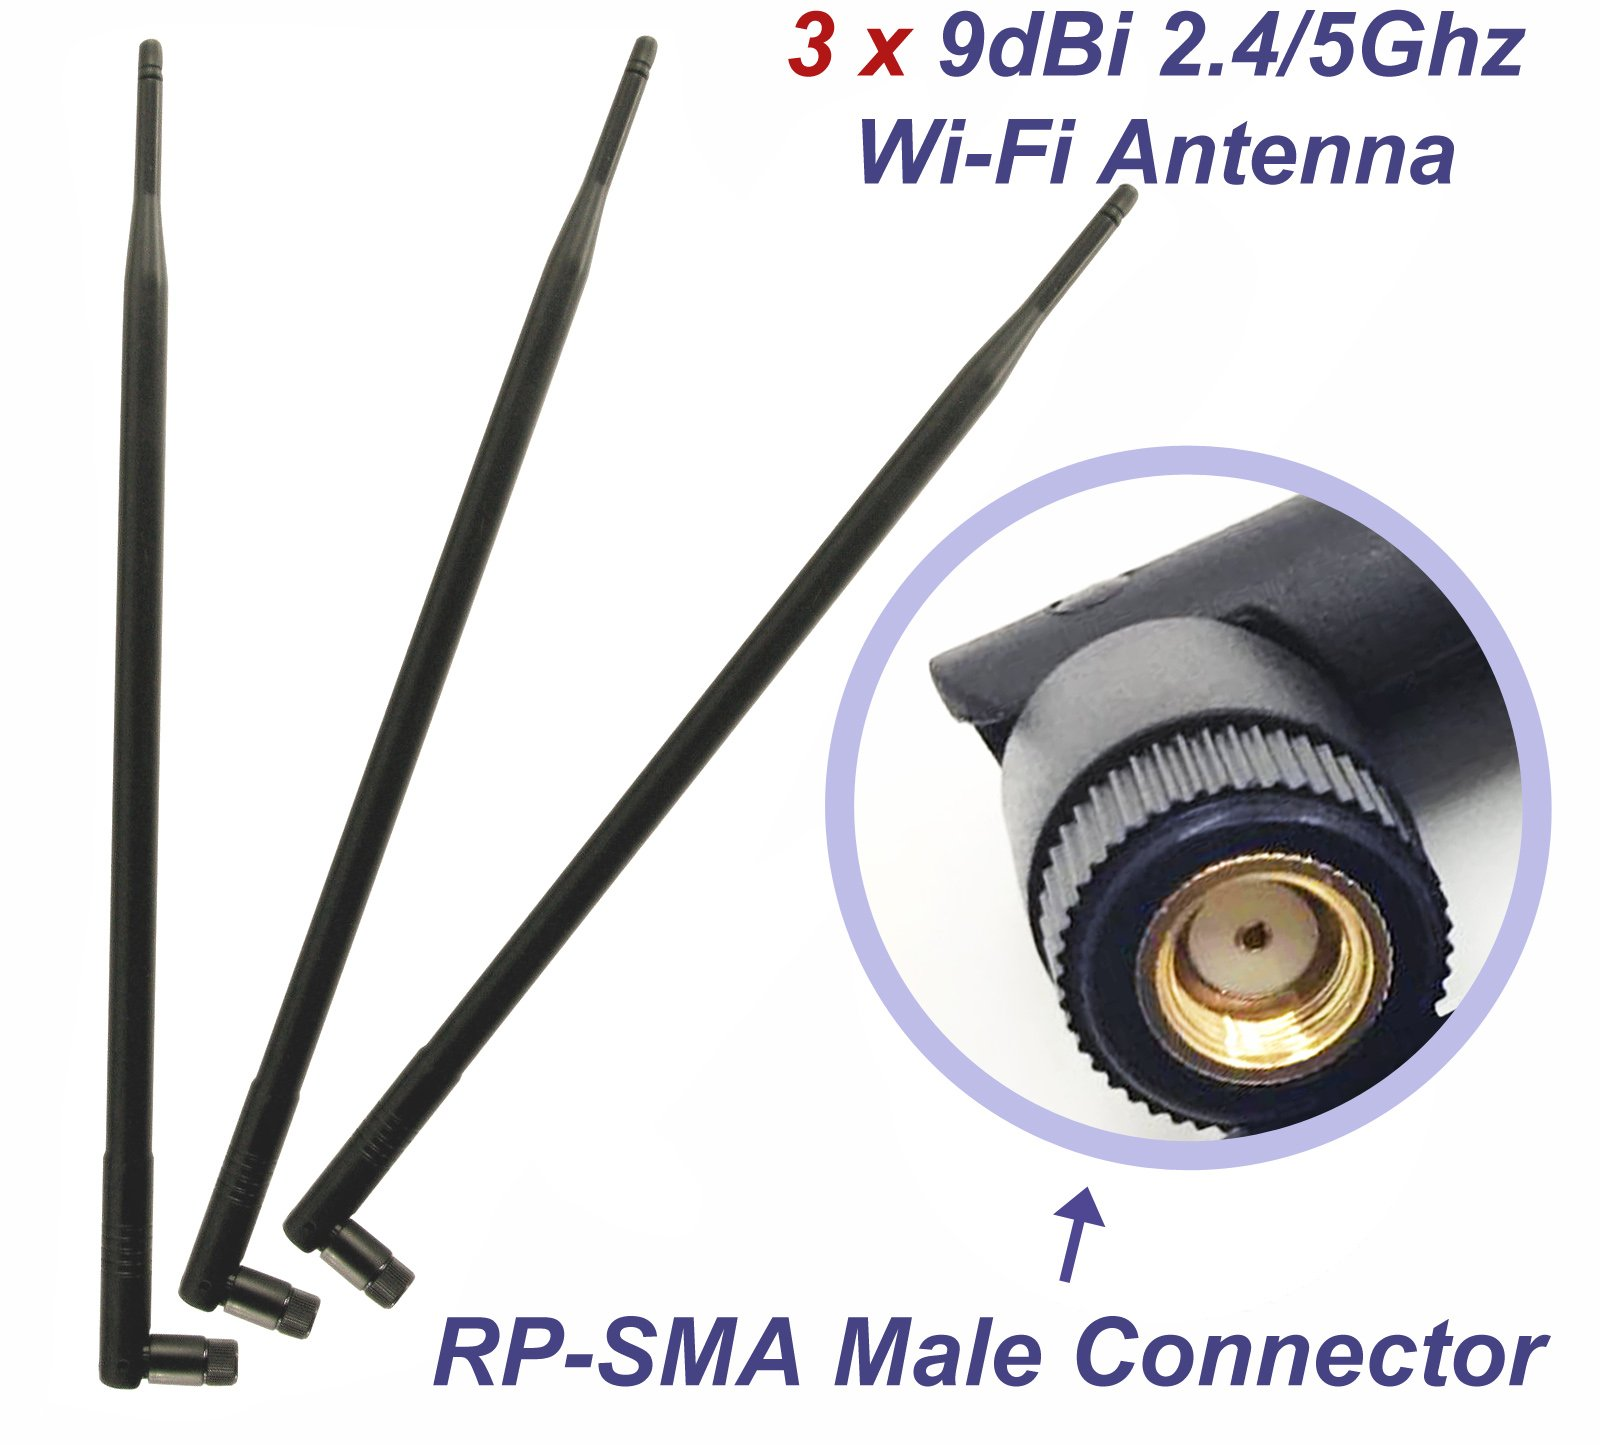 3 Wifi 9dBi Dual Band Omni Directional Antenna 2.4Ghz/5Ghz with RP-SMA Male Connector For Wireless Wi-Fi Router and Network Devices by GP Electric (Image #2)